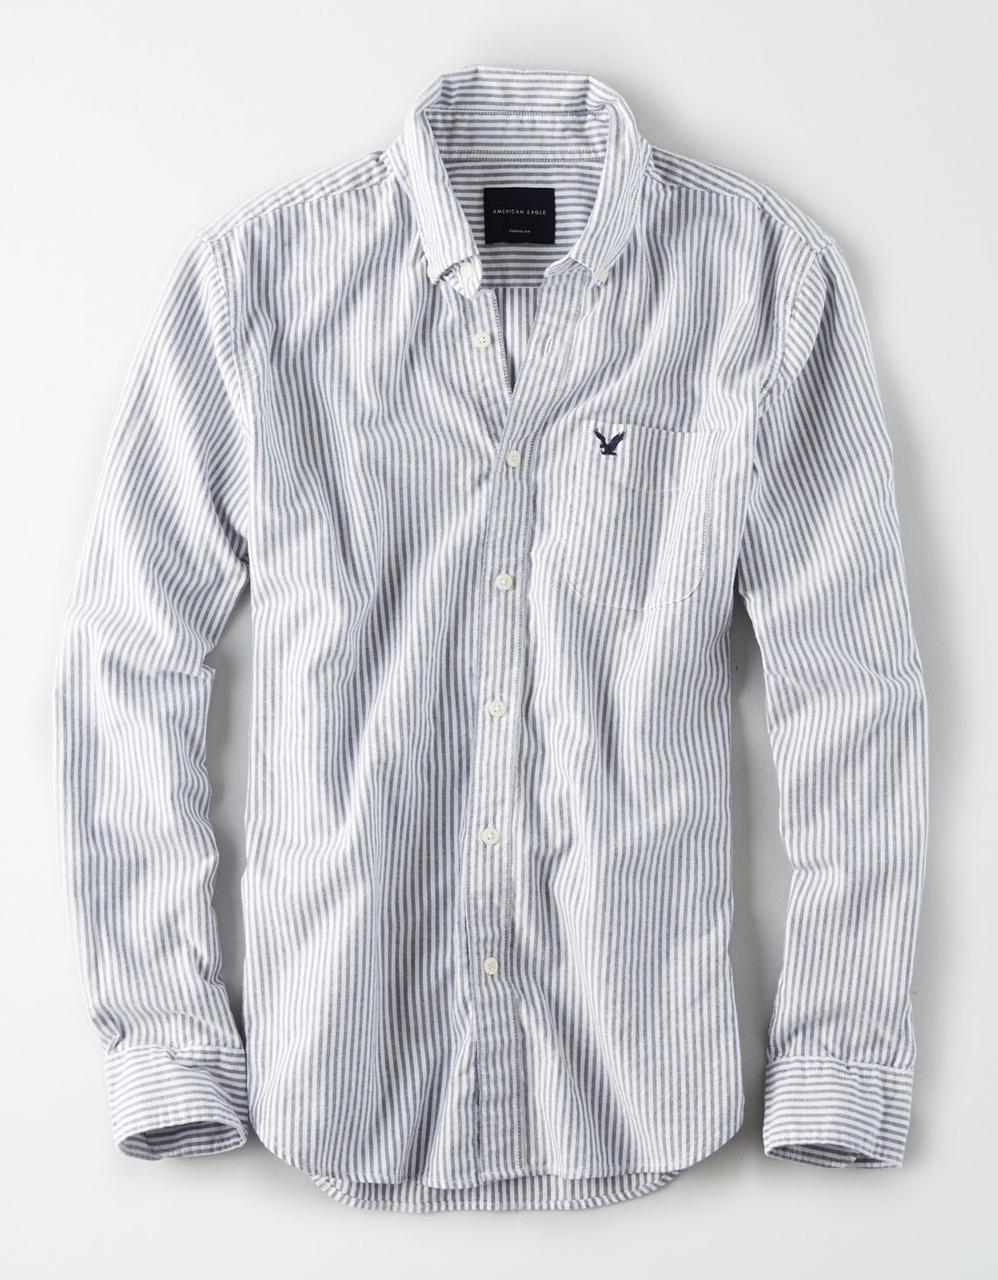 bfc95c86 American Eagle Shirts, AE STRIPED BUTTON-DOWN SHIRT for Men at Aeo.in